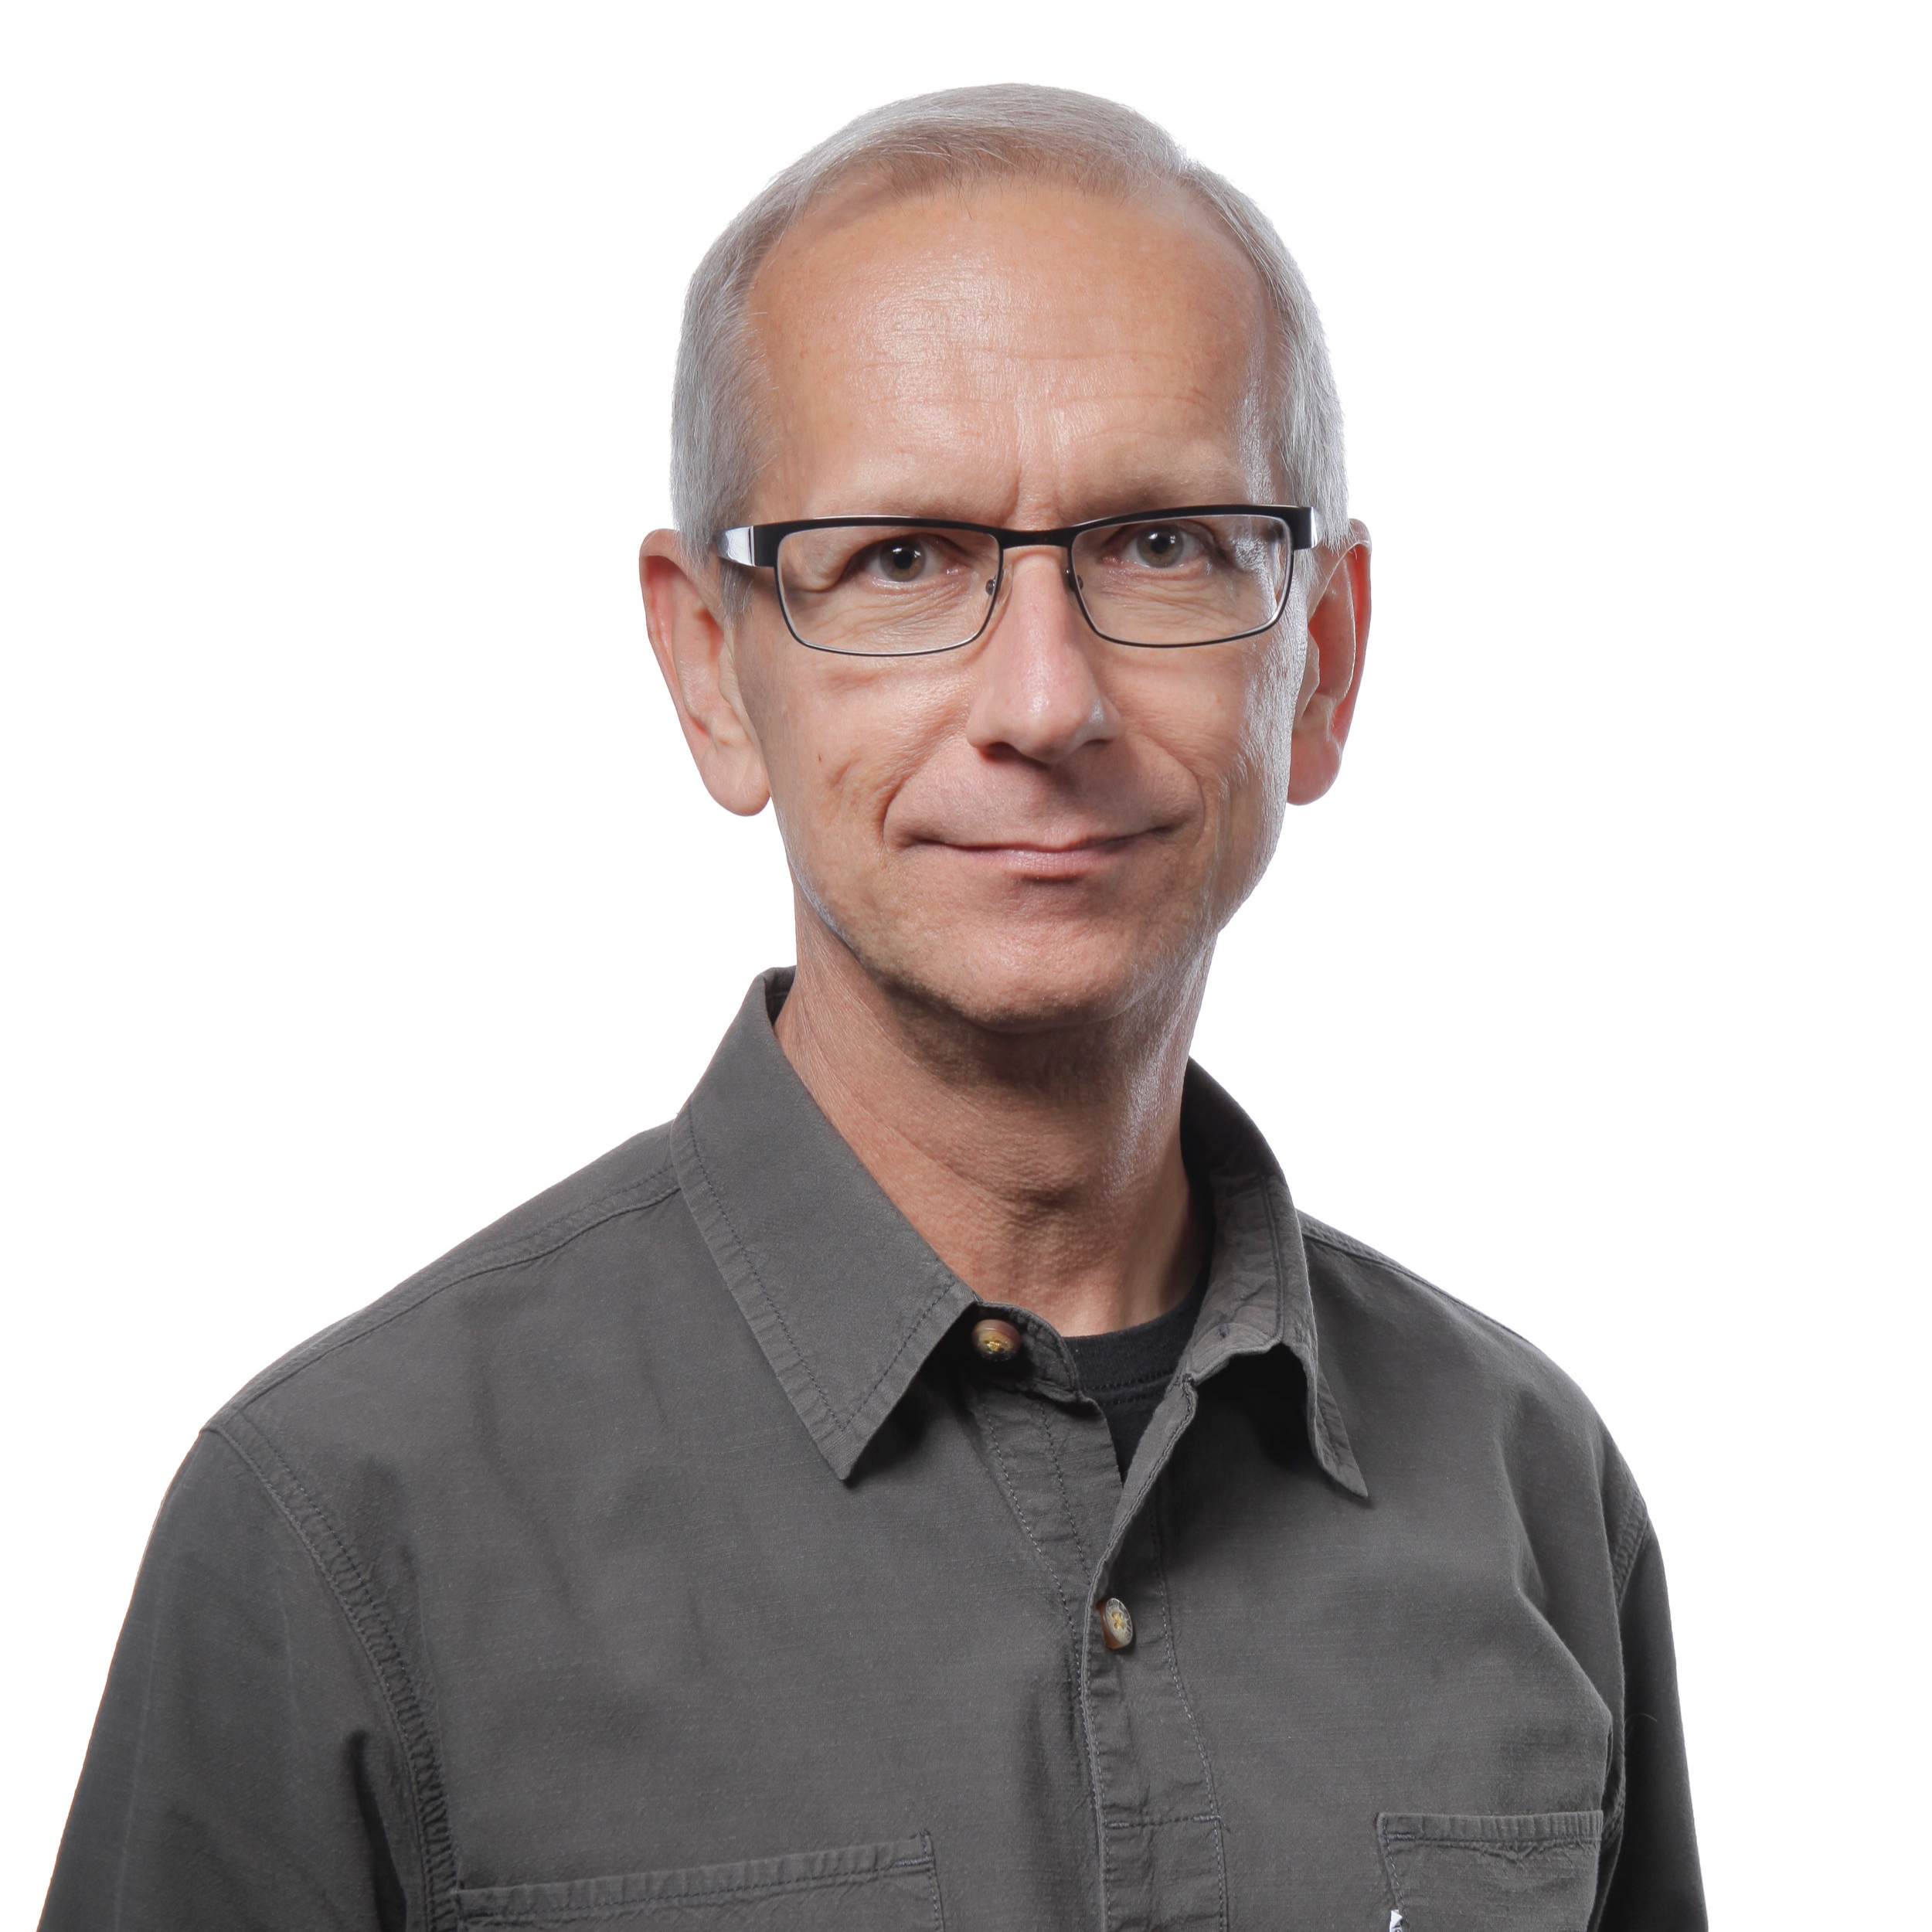 Bill Sparks - Co-Founder & COO